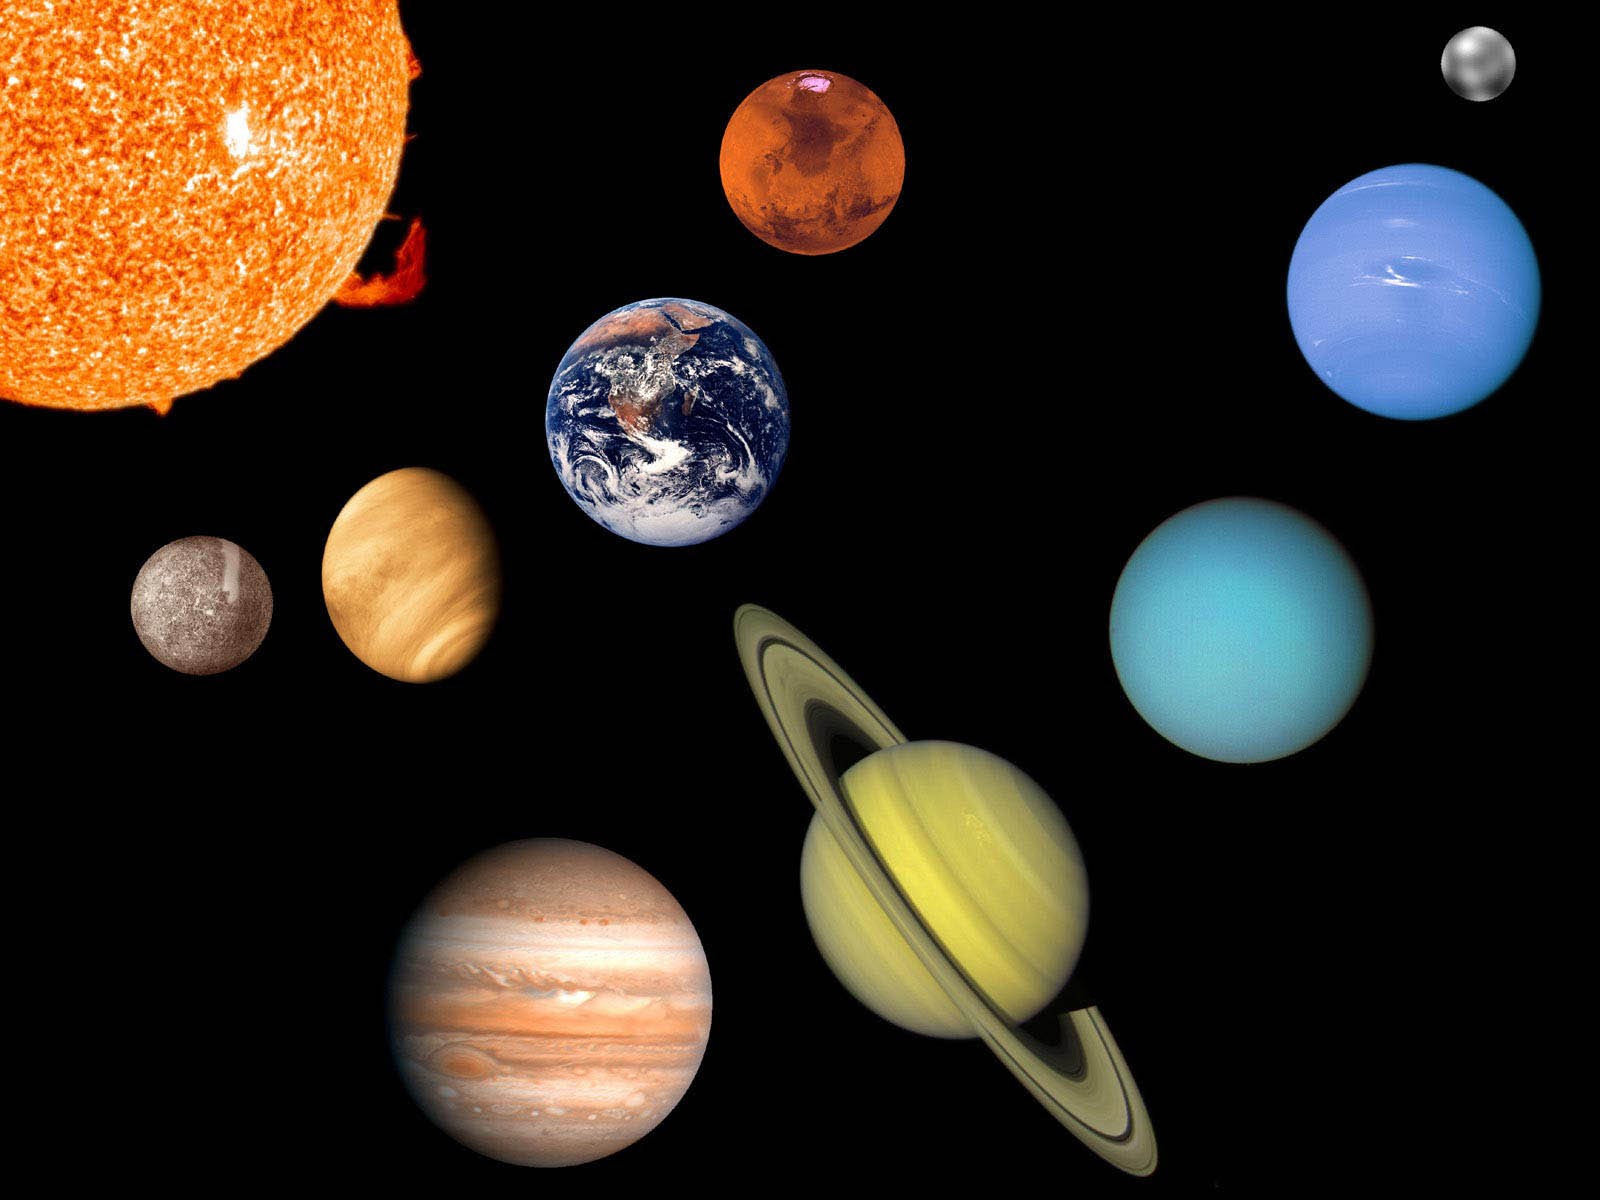 Wallpaper planets in space wallpapers for Outer space planets